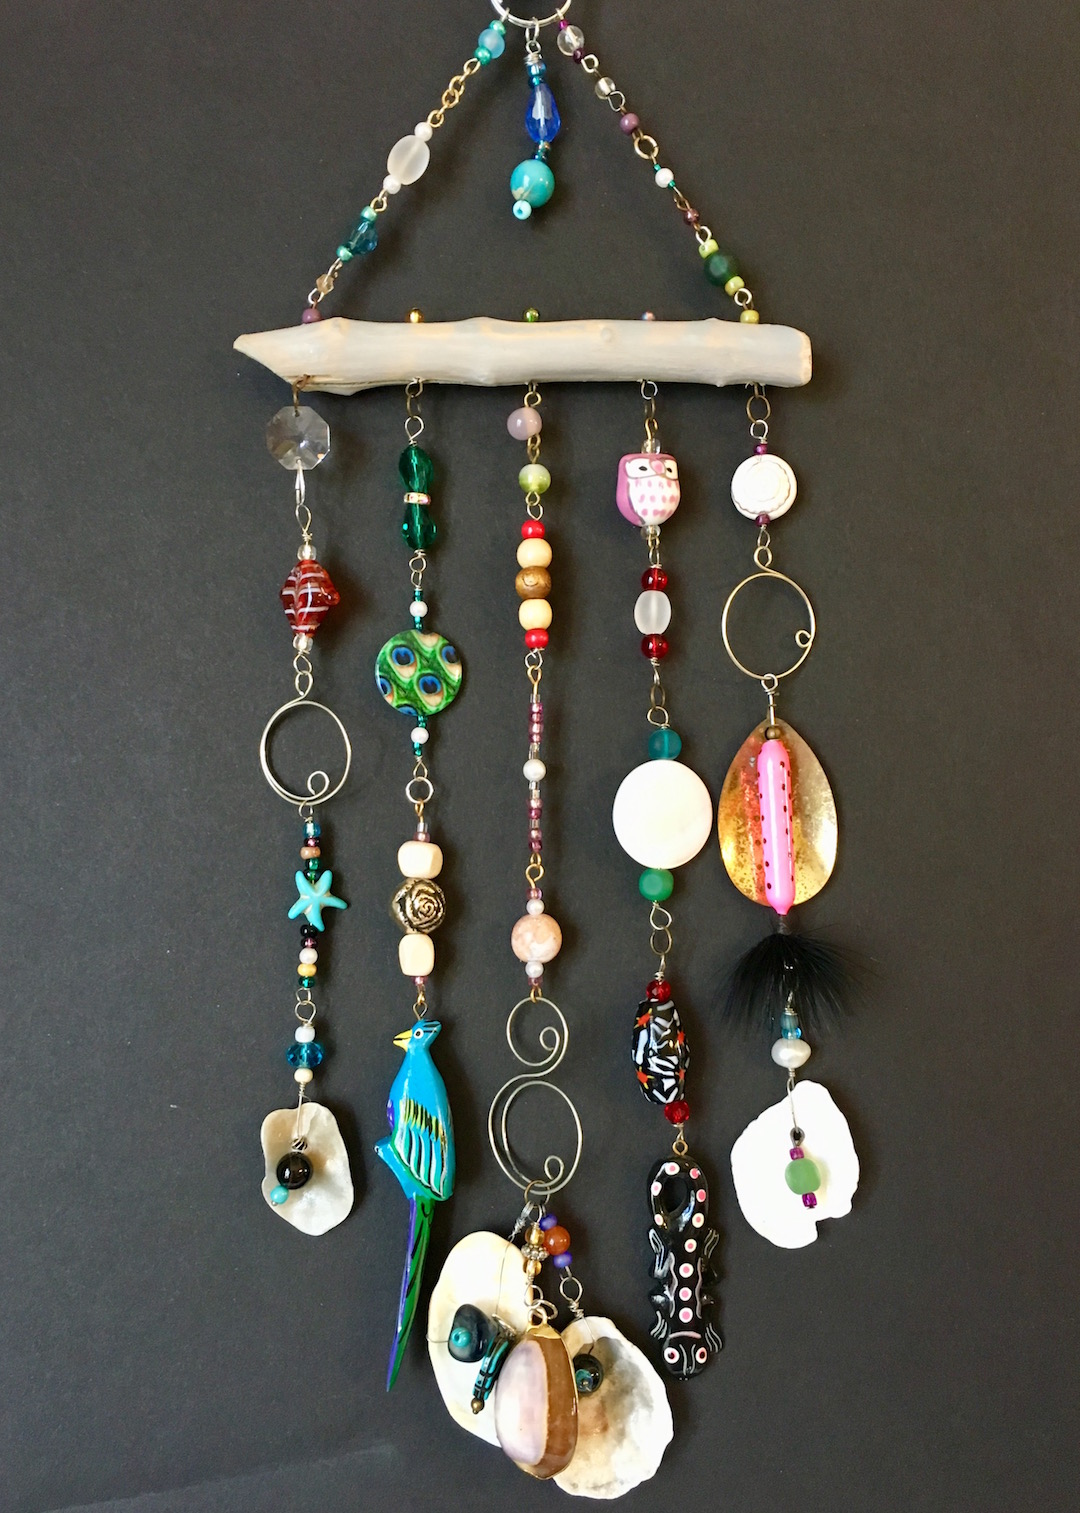 Wind Chimes/Mobiles